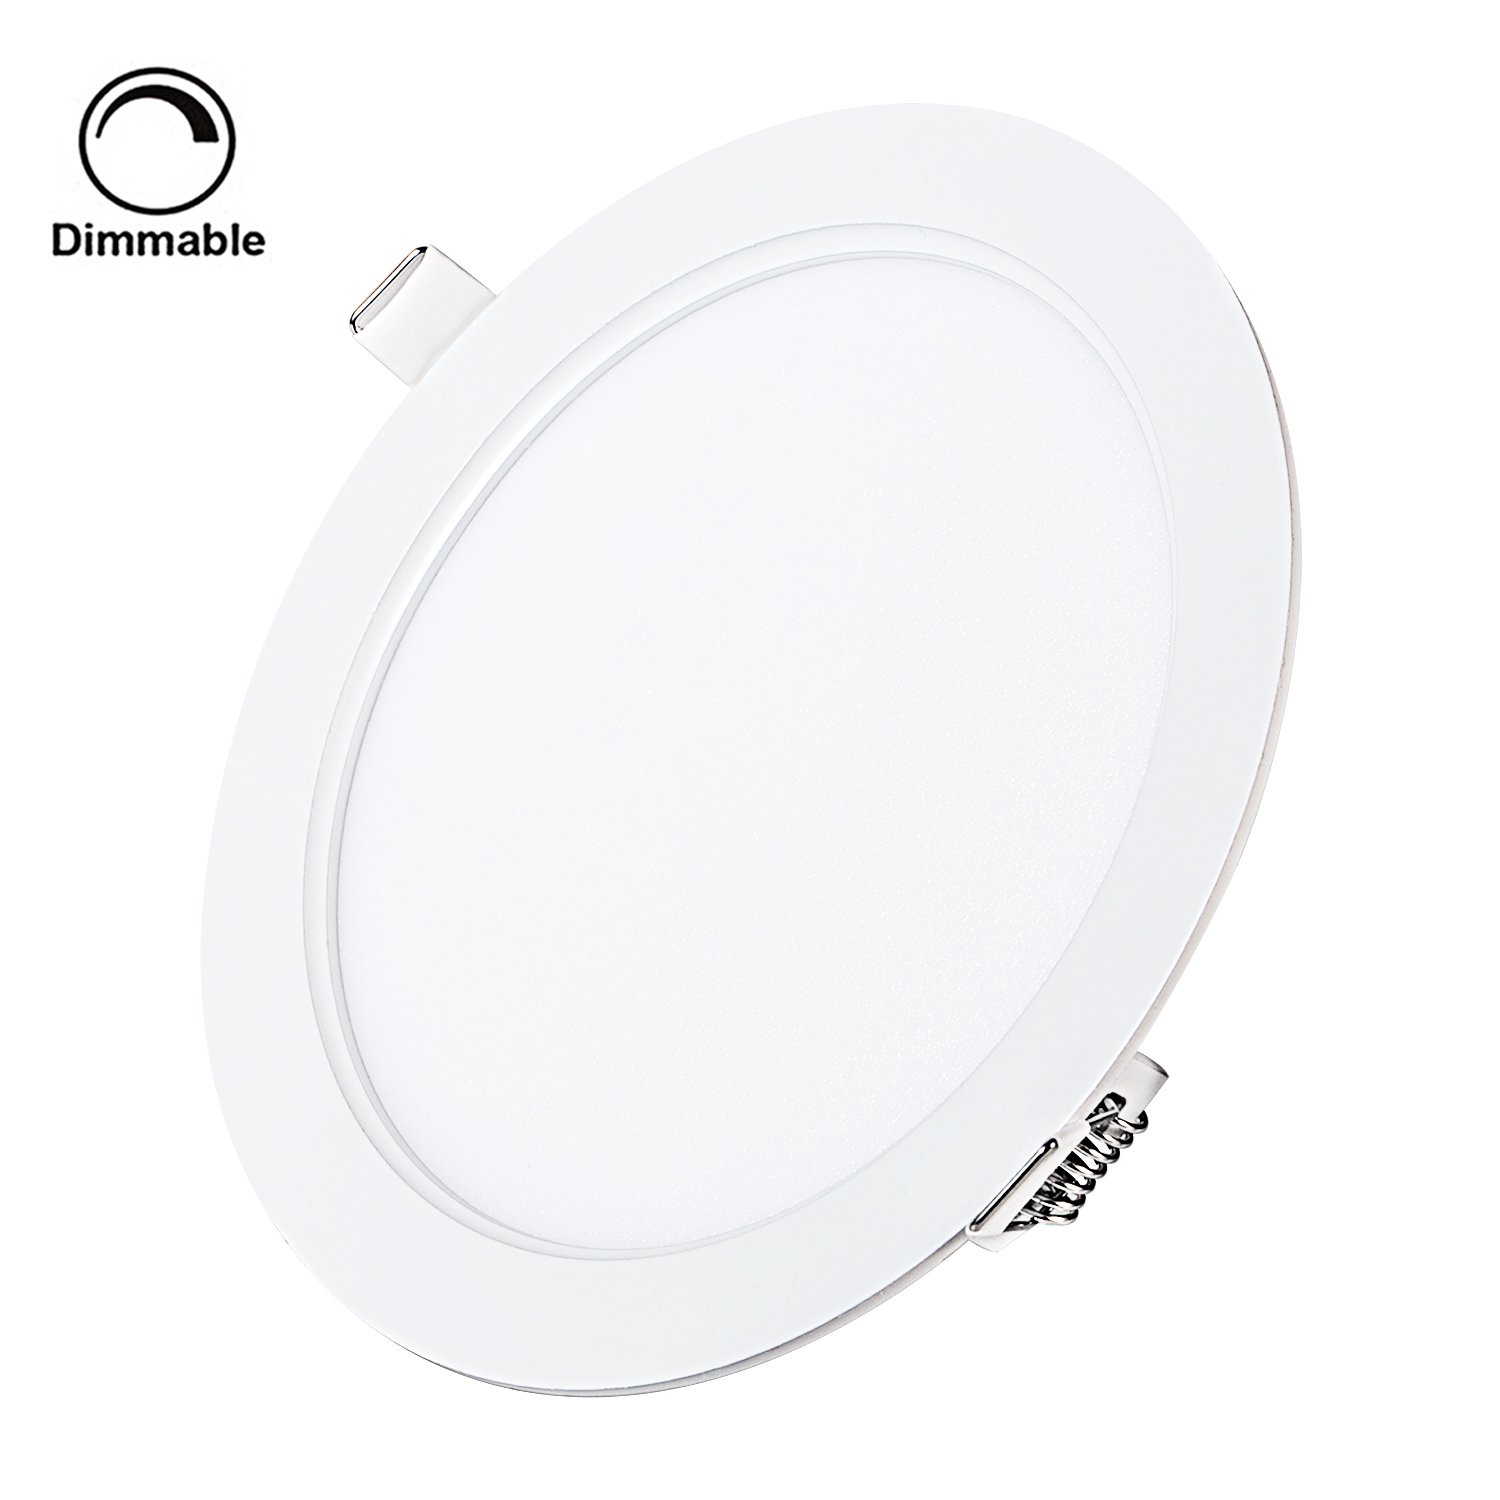 9W 5'' Dimmable LED Recessed Panel Light,Ultra-Thin Round LED Panel Light,3000K Warm White,720lm,LED Recessed Ceiling Downlight Fixture,110V LED Driver Included